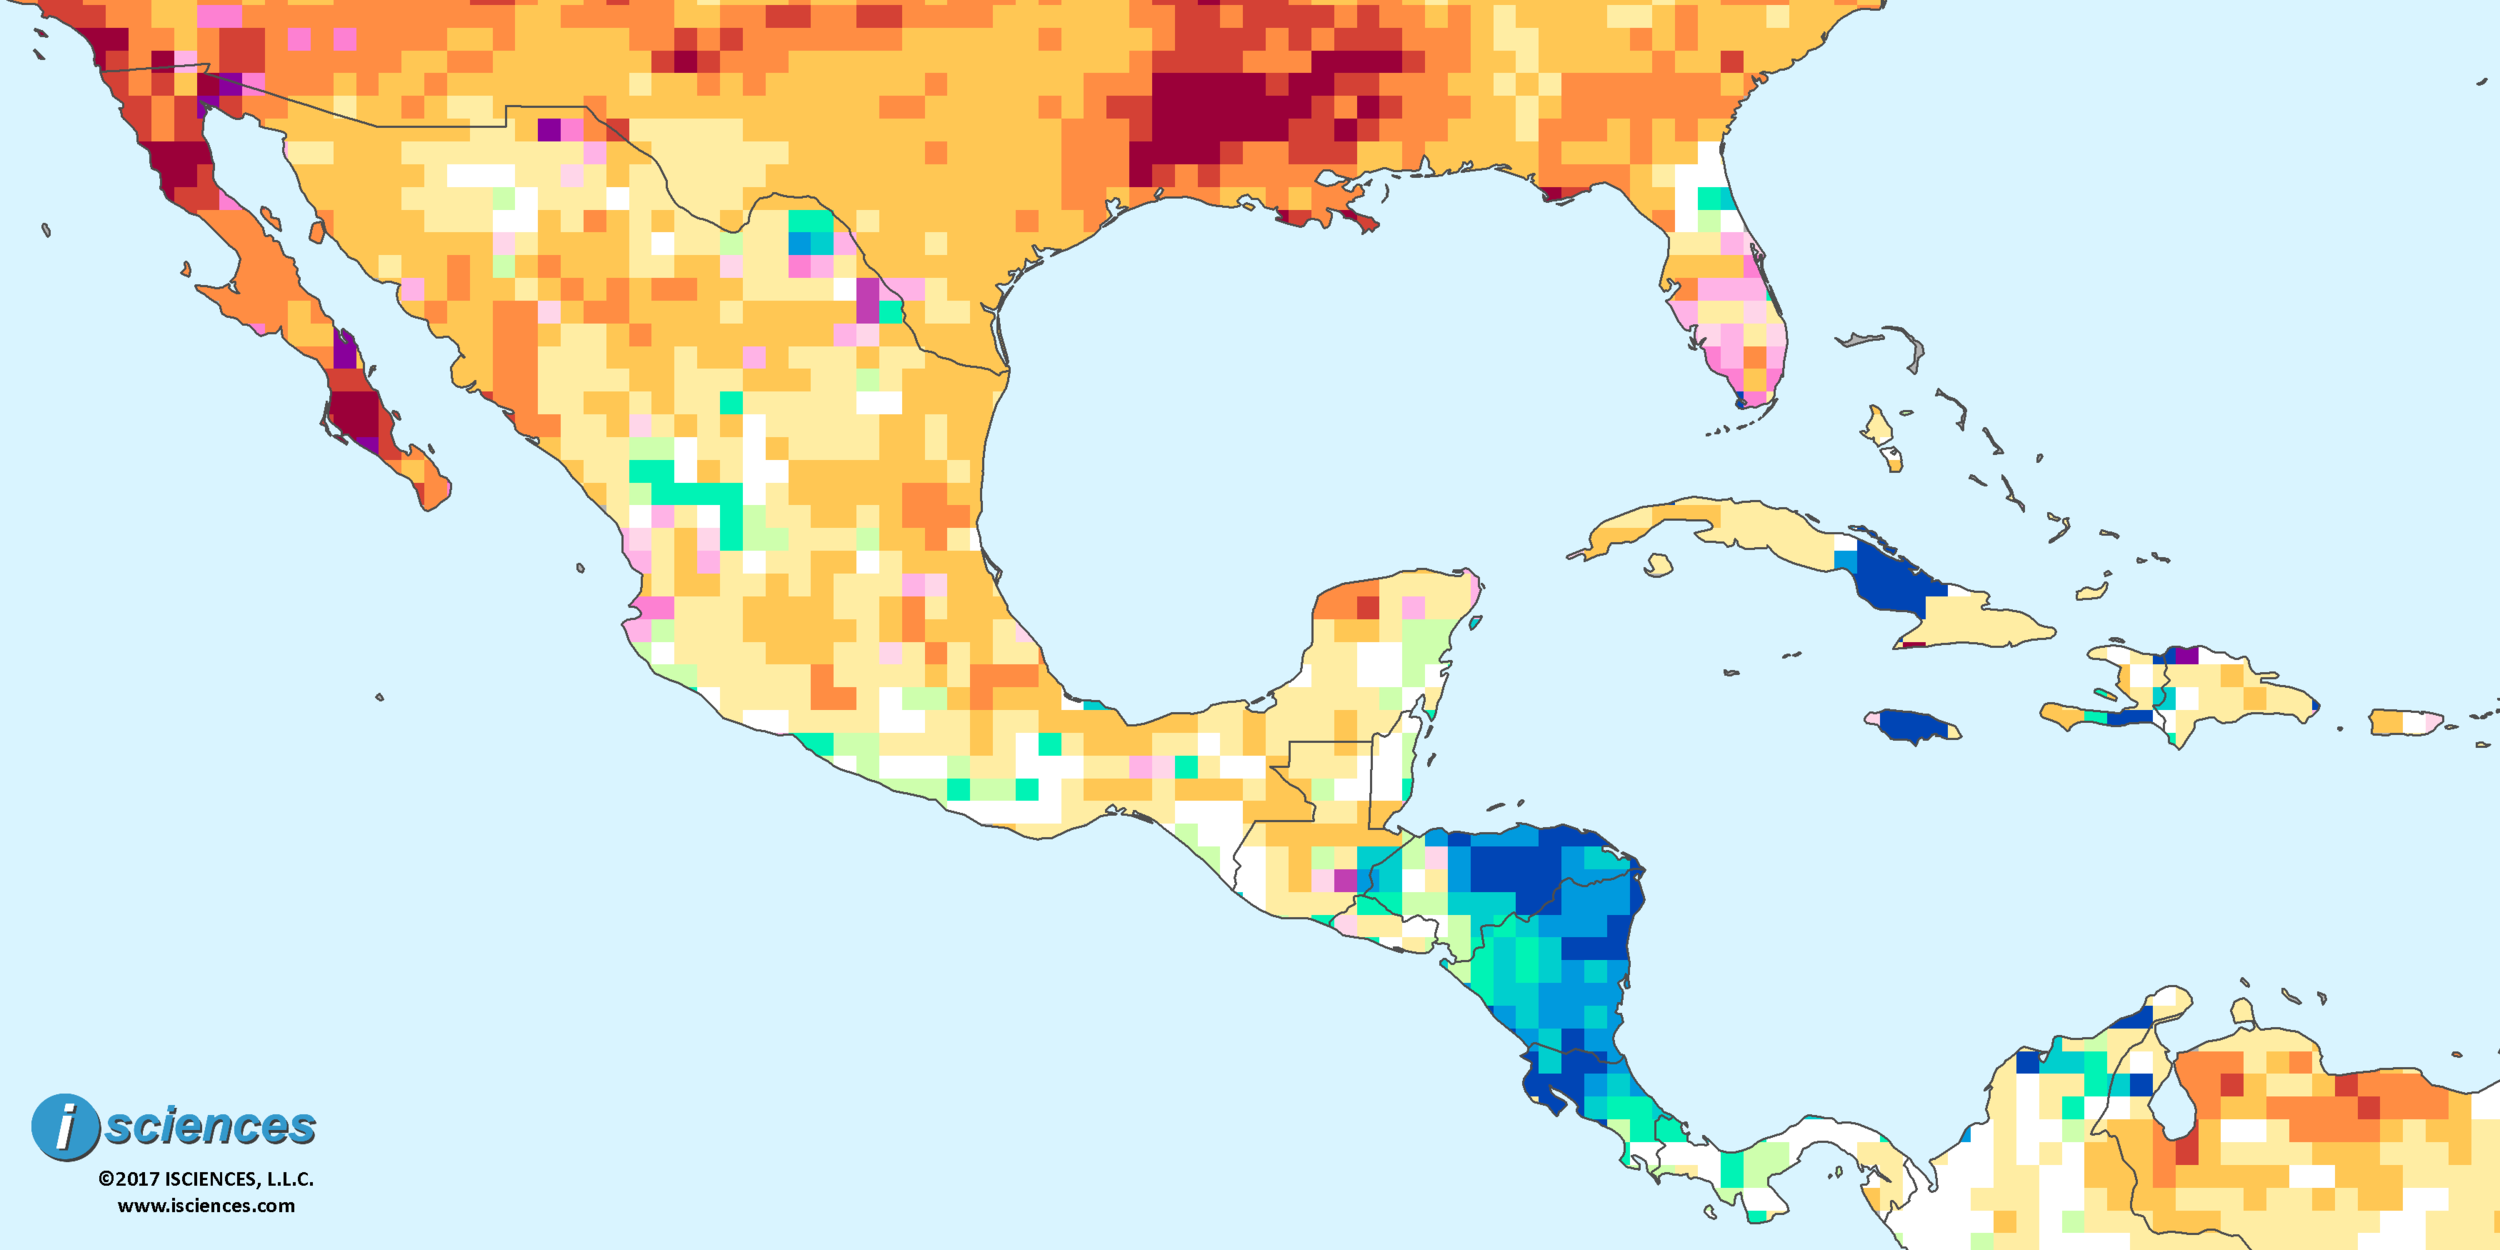 Mexico Central America the Caribbean Water deficits forecast